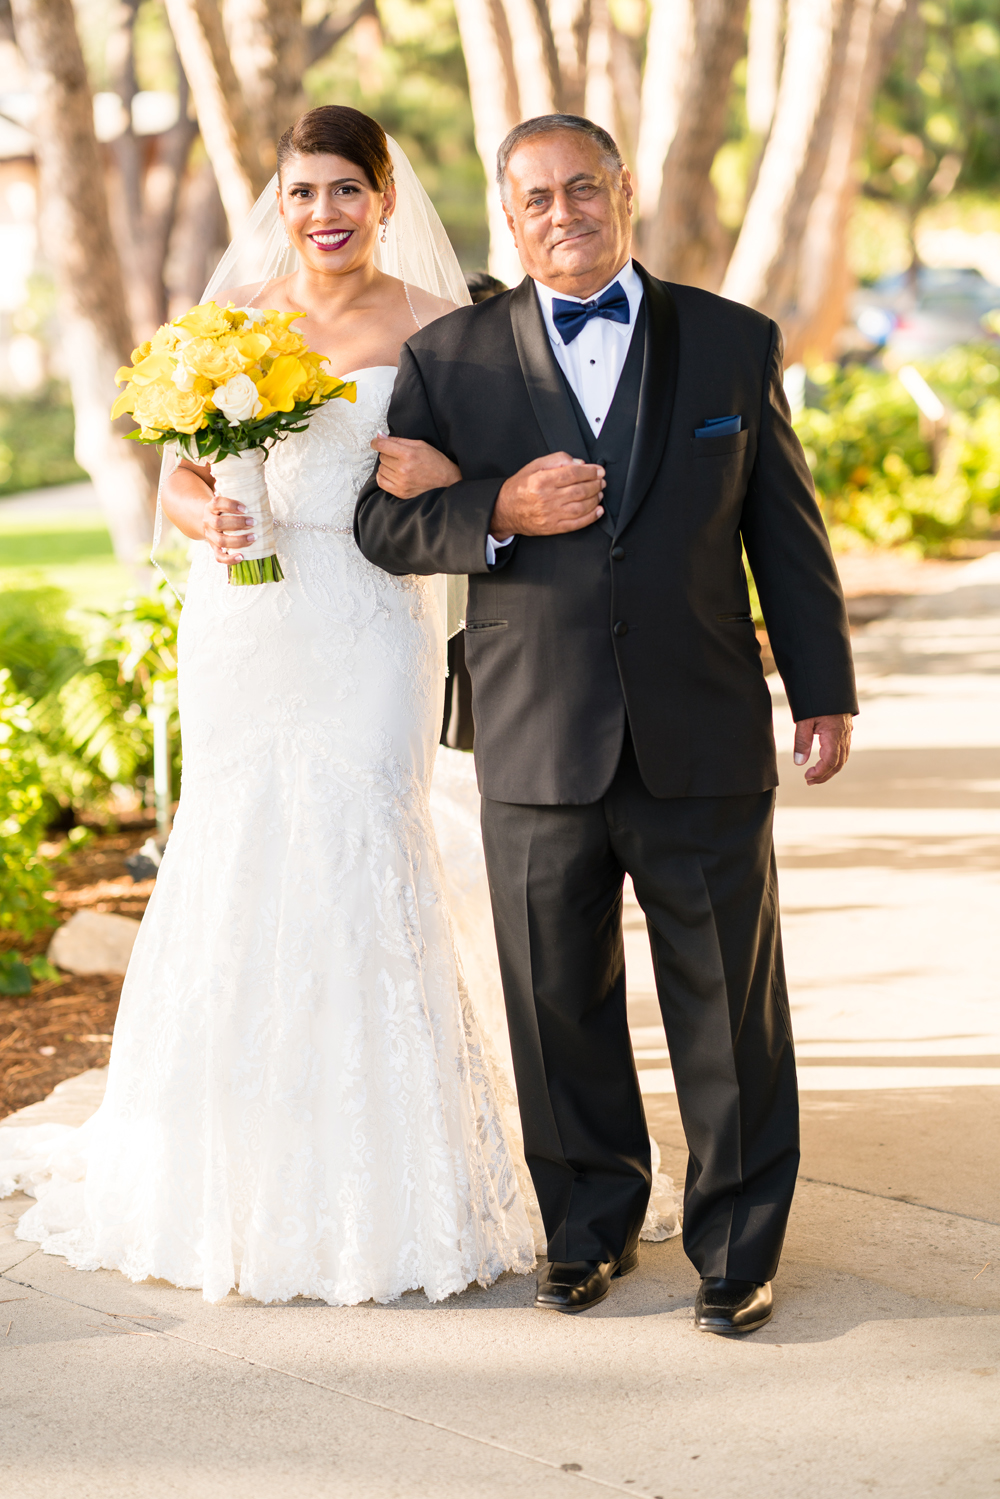 34363-lively-navy-yellow-harbor-wedding-proud-father-walking-bride-down-aisle.jpg